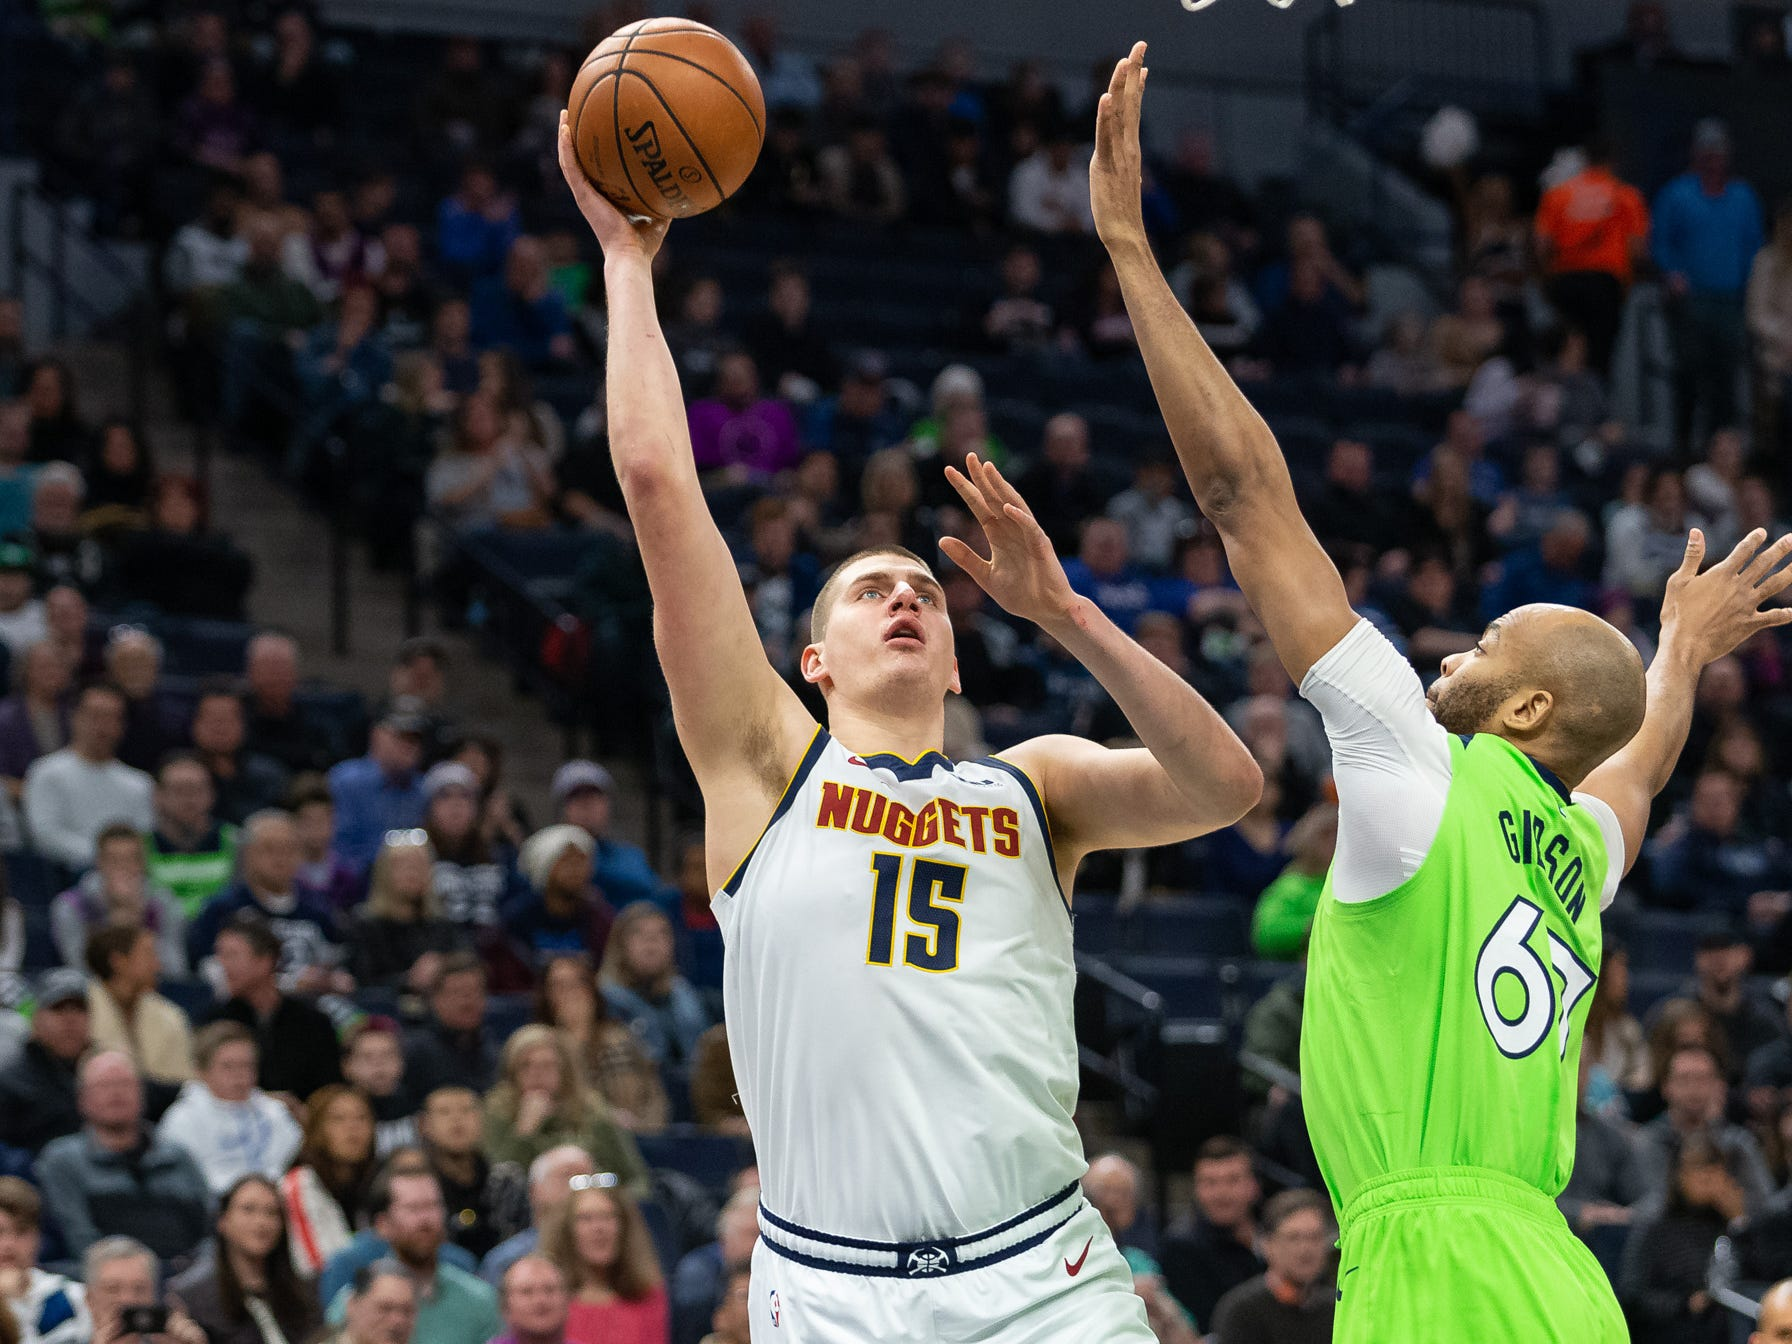 71. Nikola Jokic, Nuggets (Feb. 2): 13 points, 16 rebounds, 10 assists in 107-106 win over T'wolves (ninth of season).